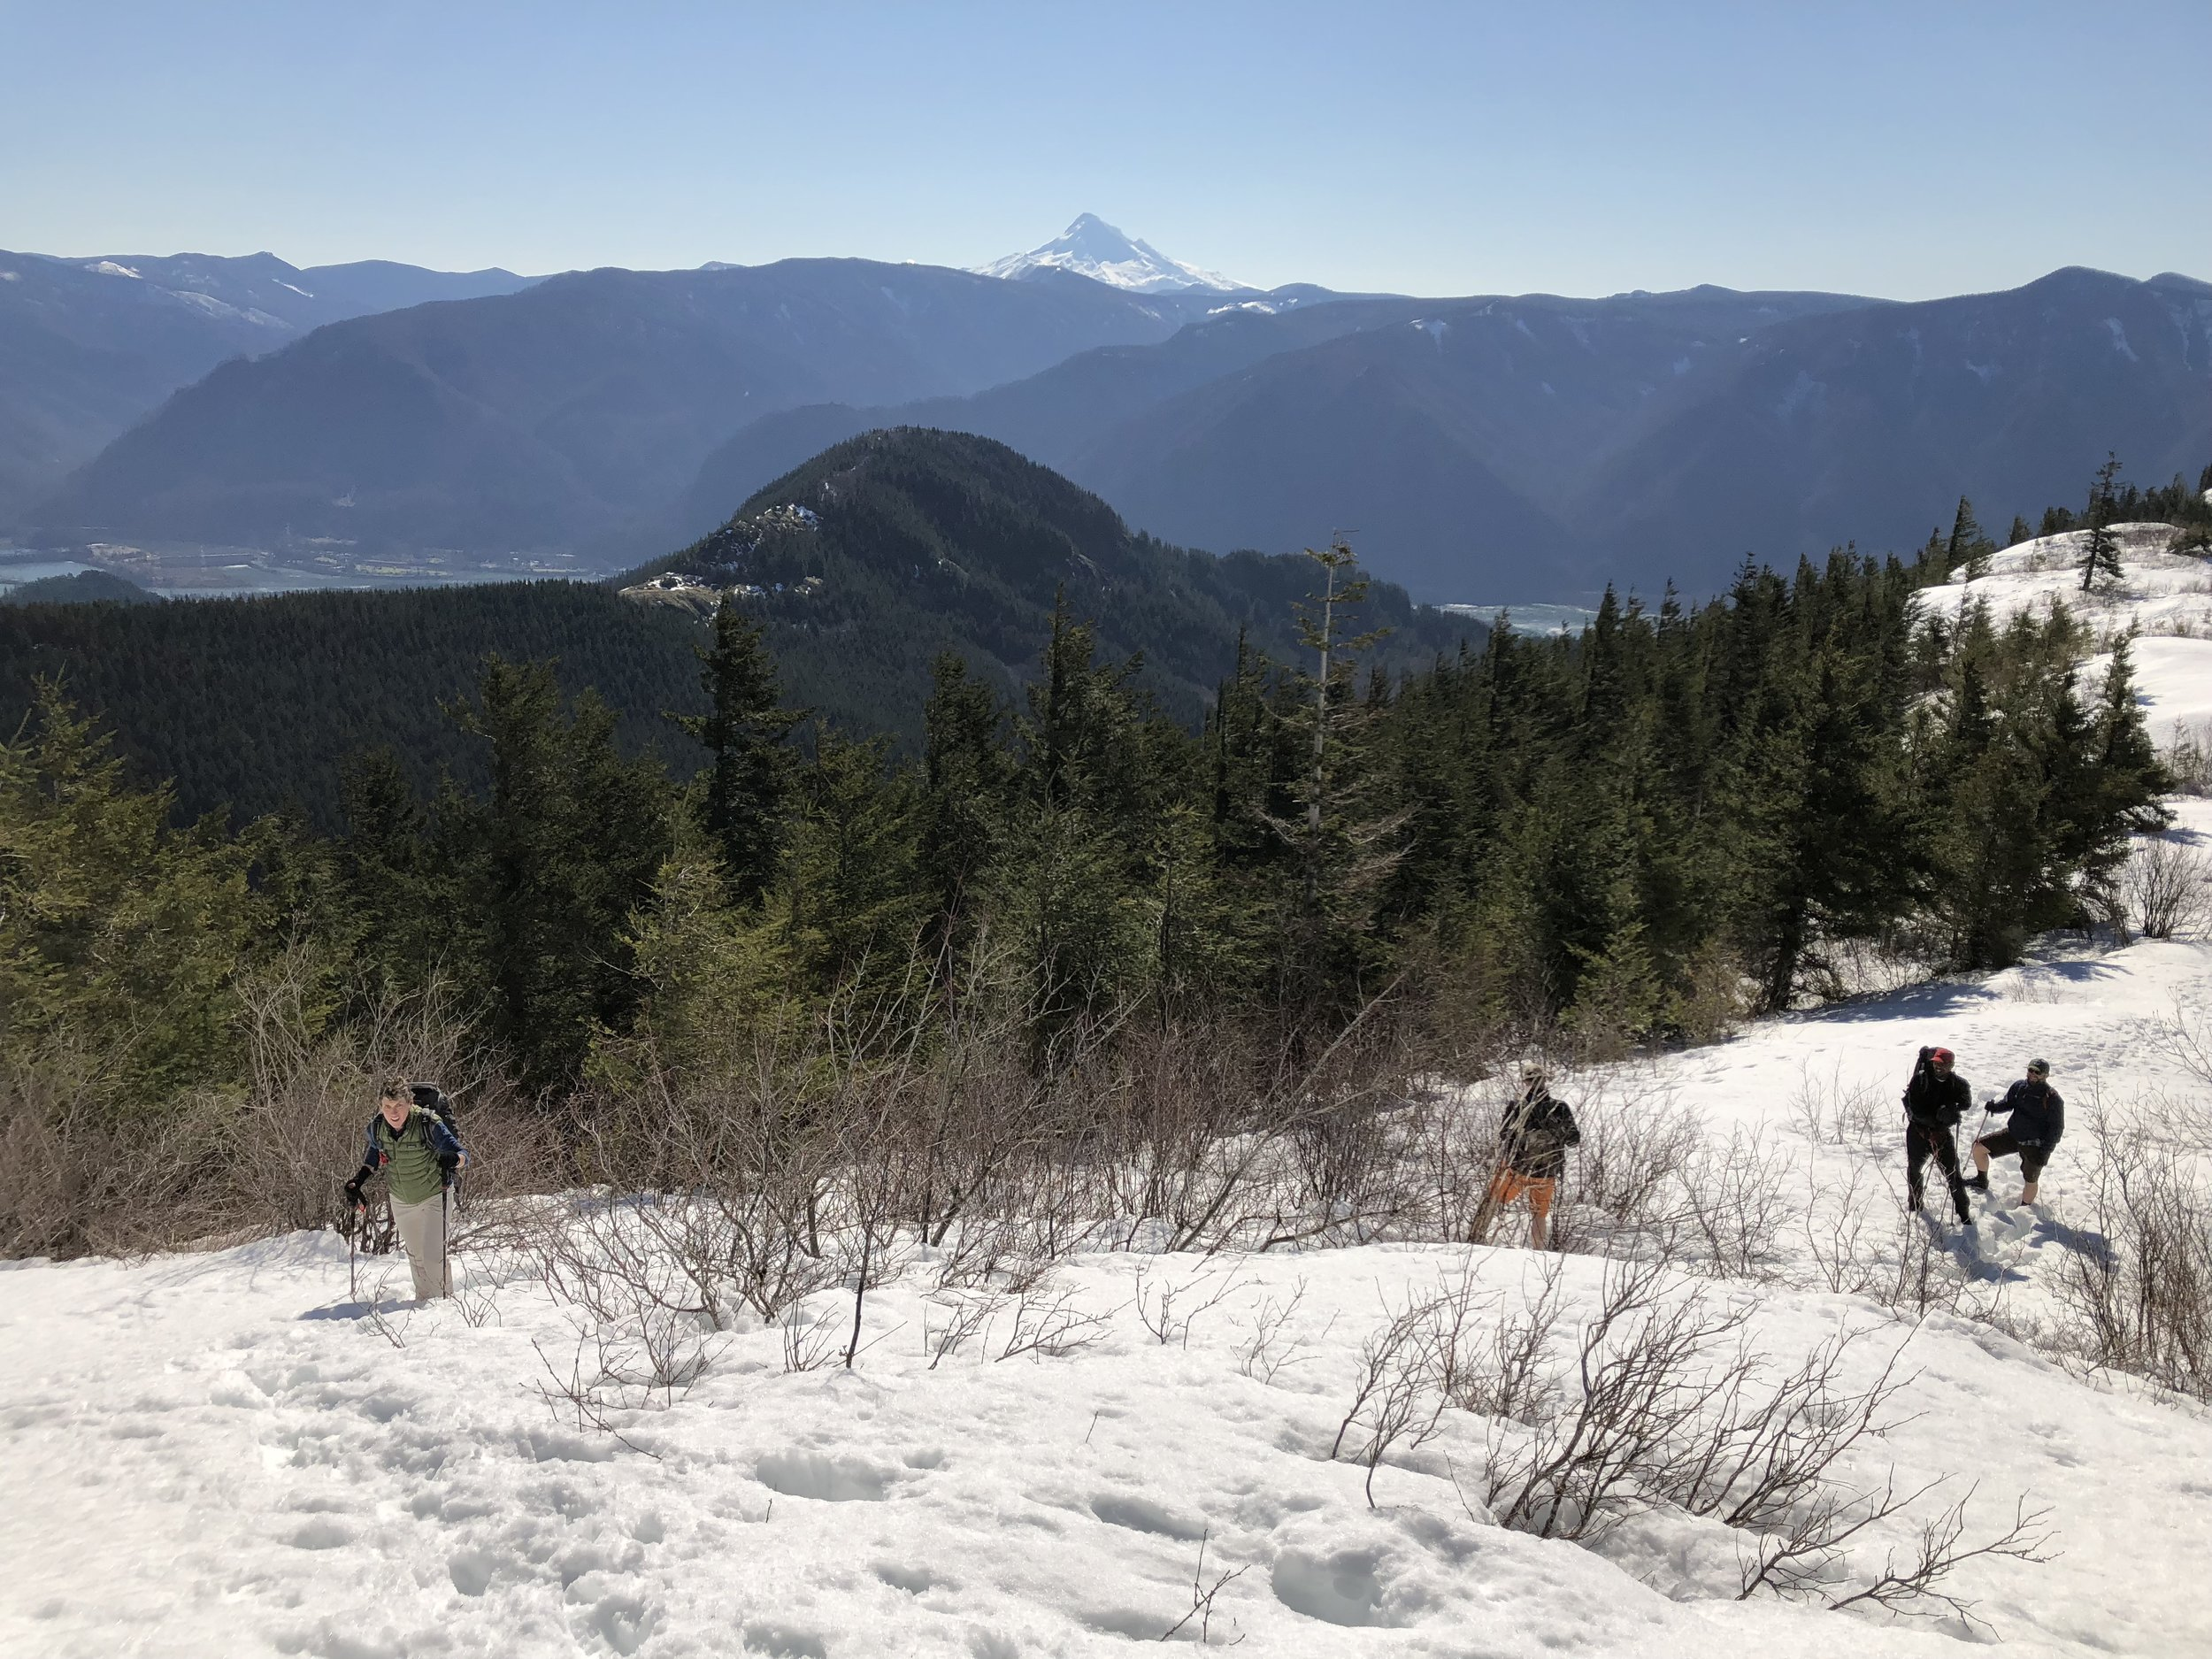 The team hiking up through the snow and nearing the summit with Mt. Hood in the distance.